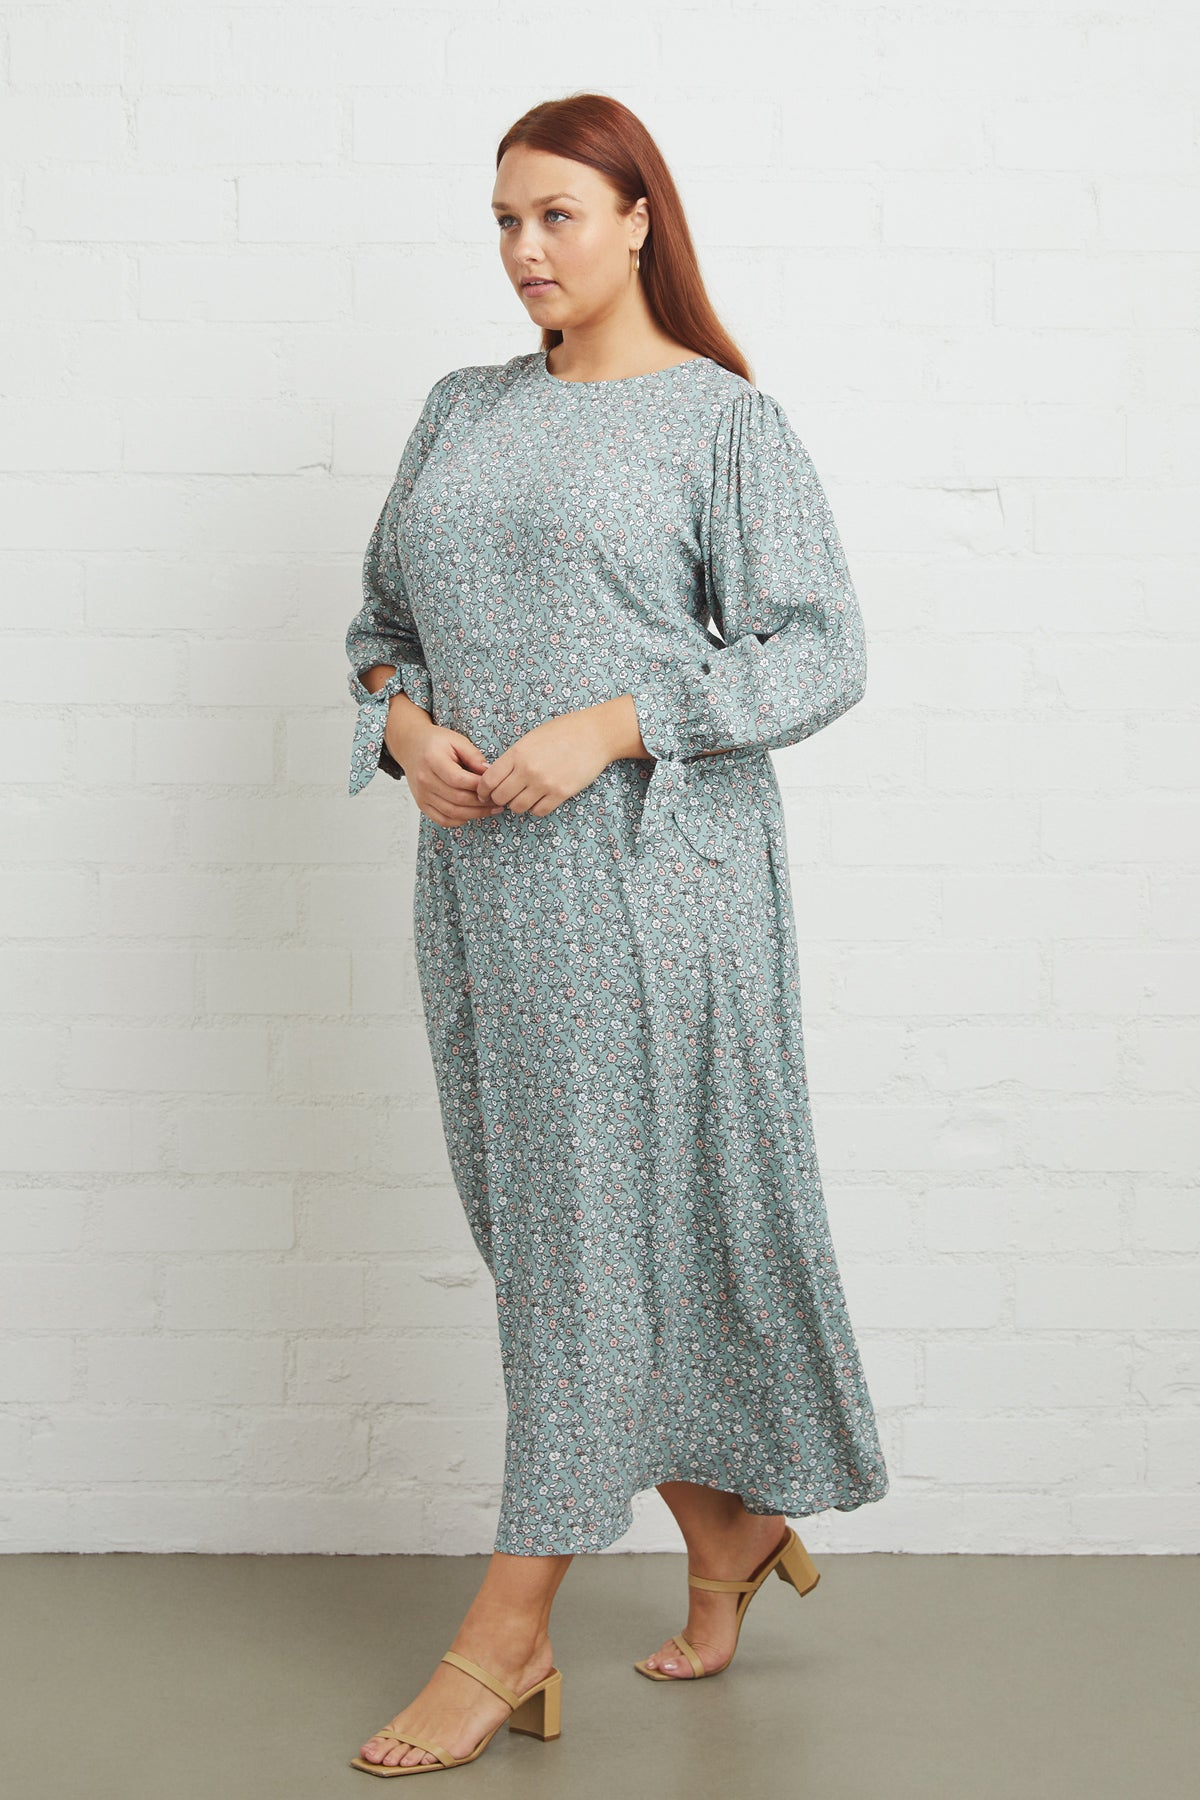 Crepe Tati Dress - Forget Me Not, Plus Size